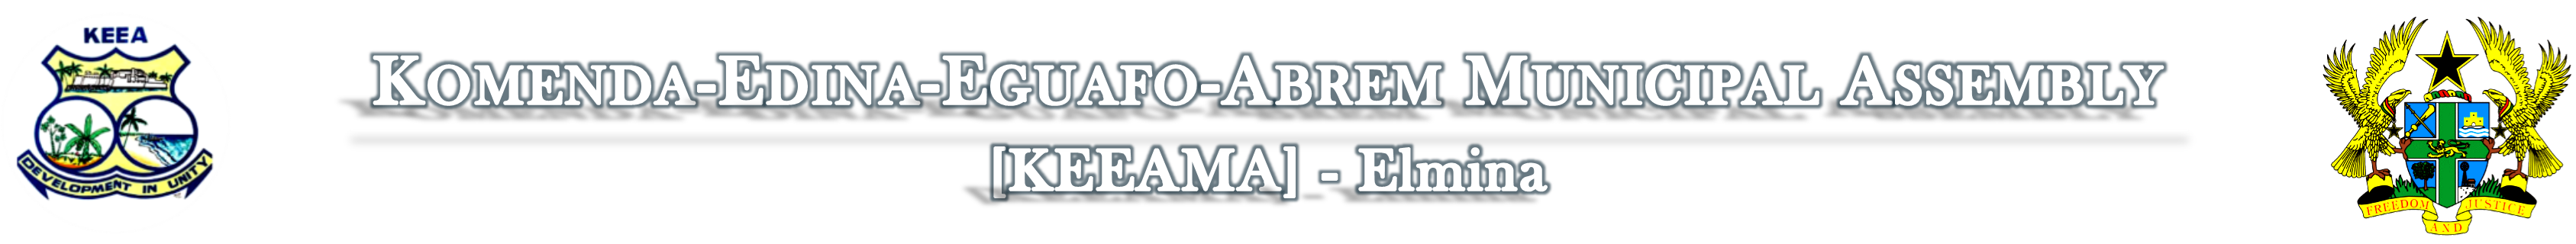 KEEAMA official website Logo